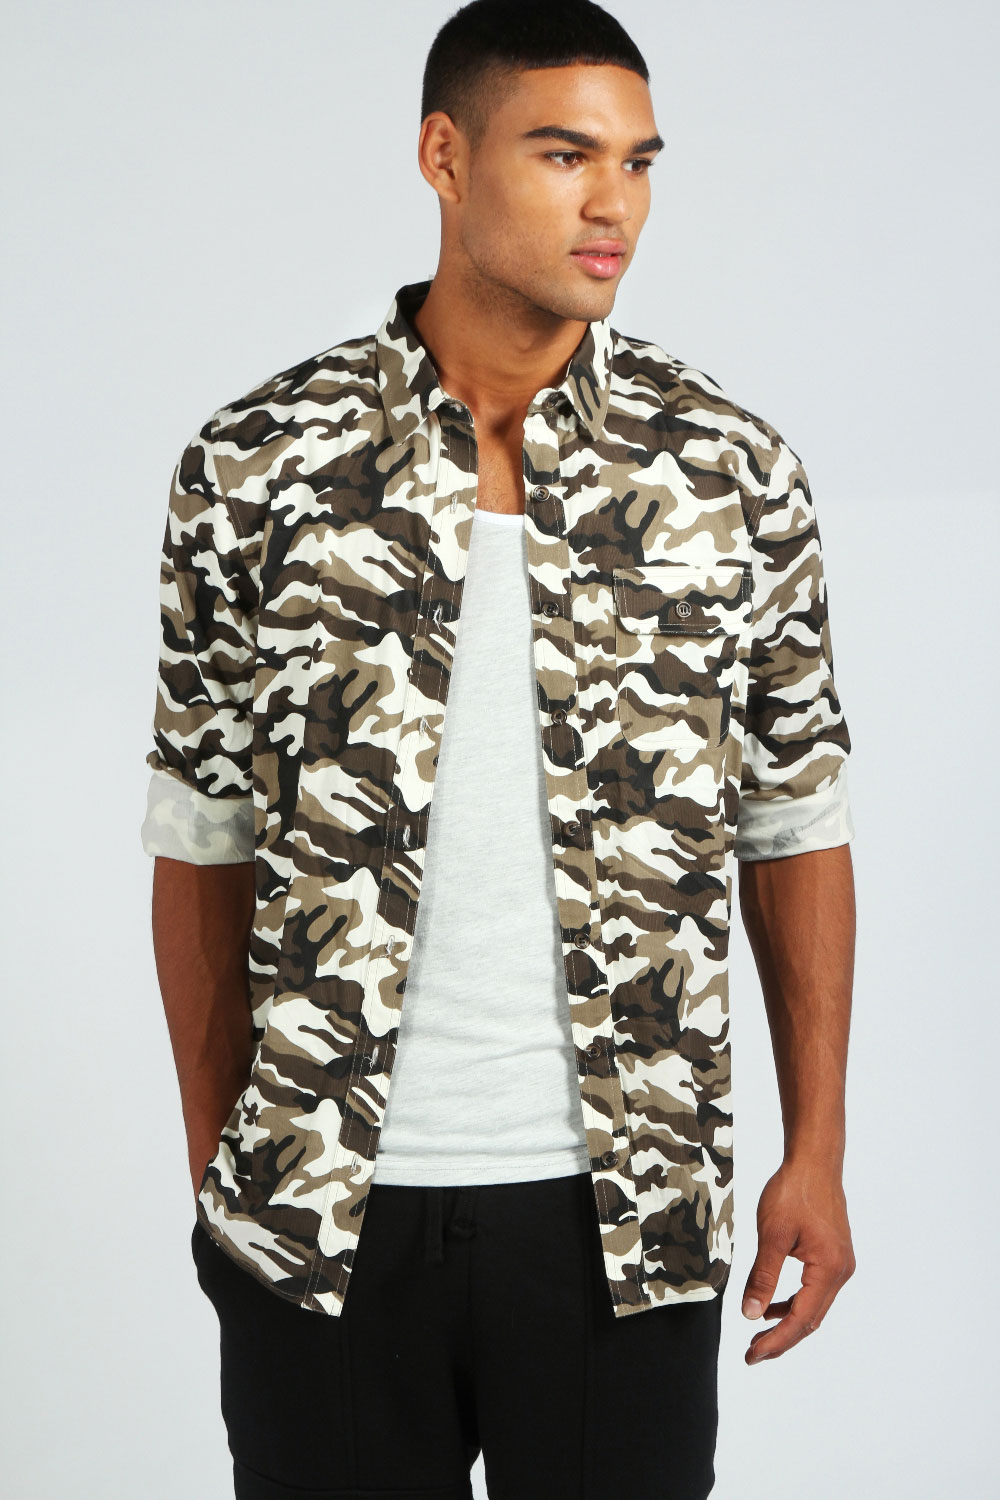 Boohoo-Mens-Long-Sleeve-All-Over-Camo-Top-Shirt-In-Camo-Green